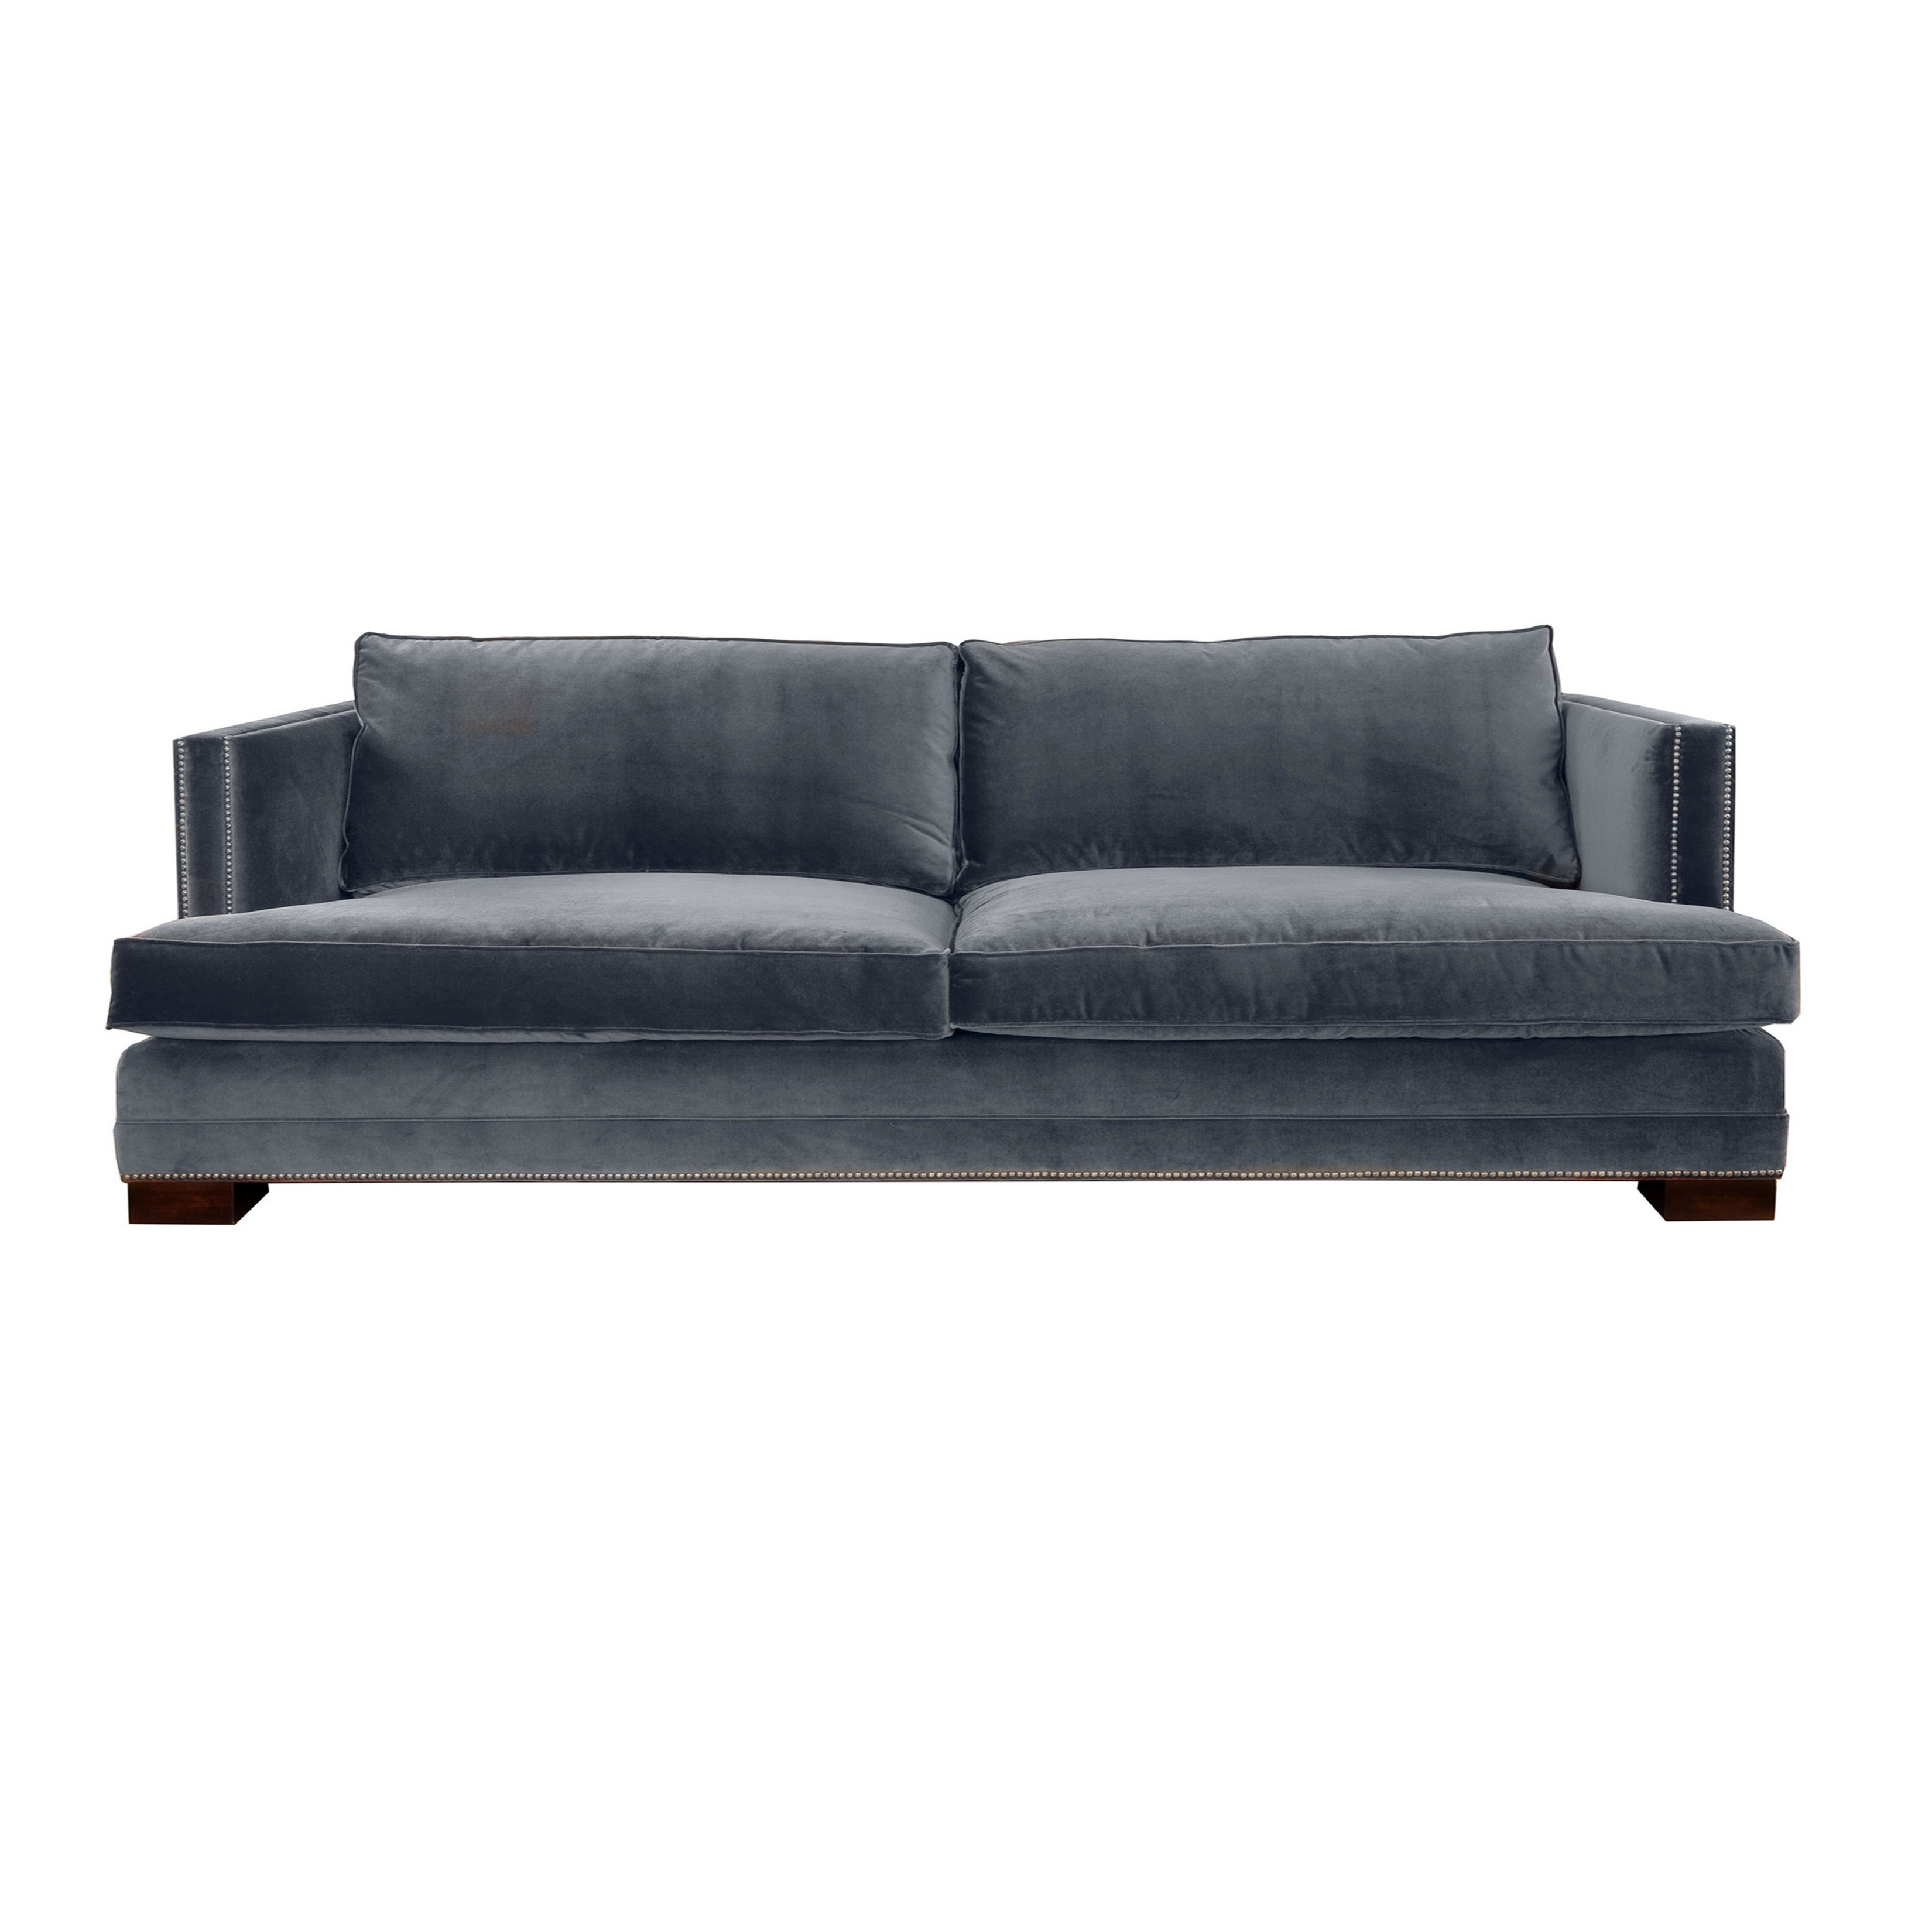 Joss And Main Sectional Sofas intended for Well known Joss And Main Sofas.100 Slipcovers For Sectional Sofas With Chaise